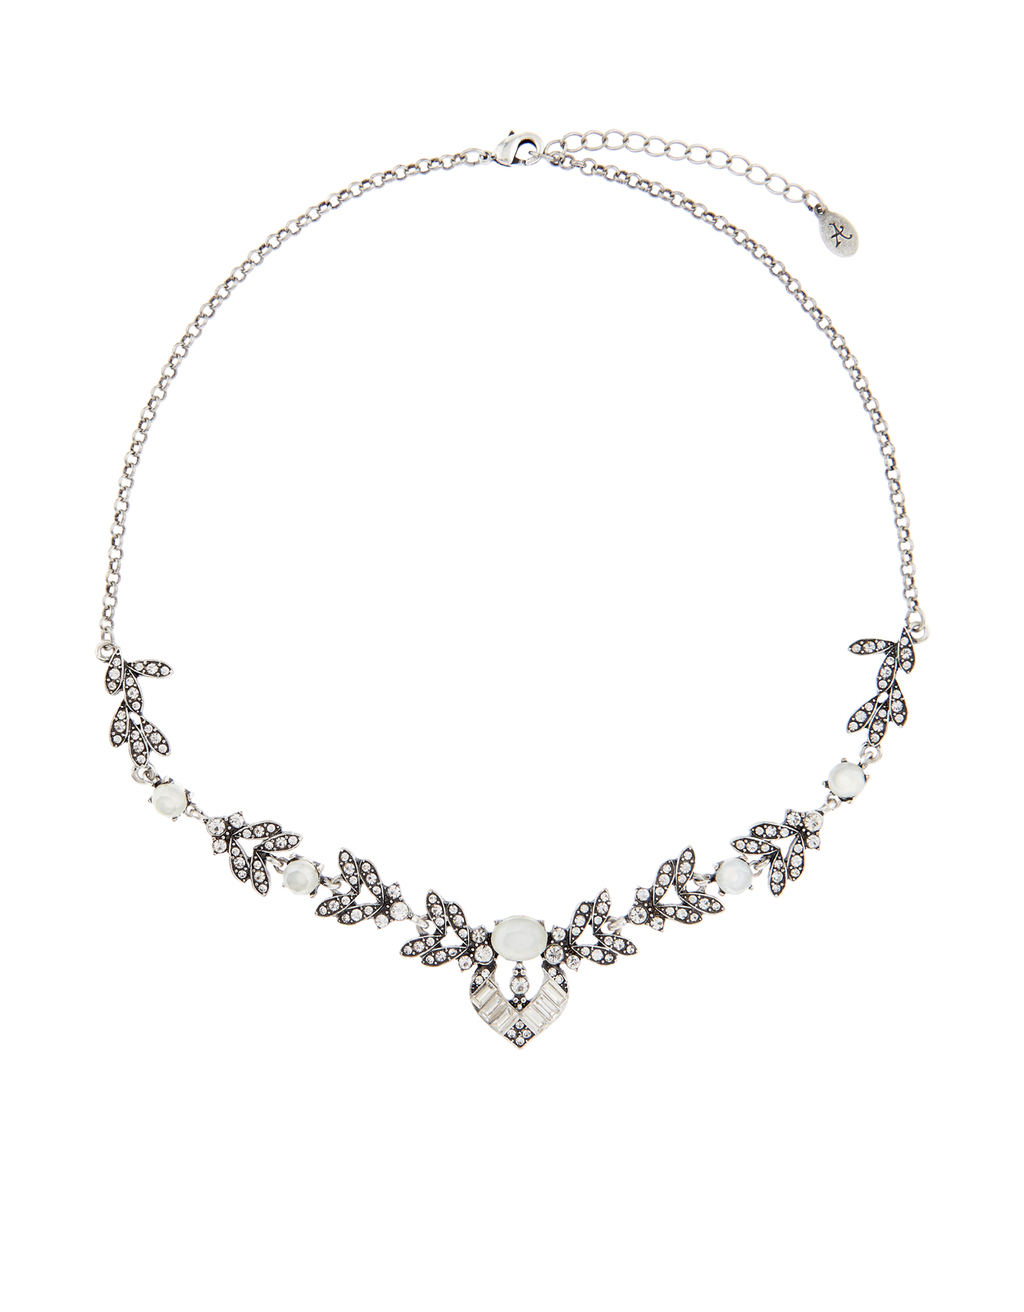 Katie Deco Statement Necklace - predominant colour: silver; occasions: evening, occasion; style: choker/collar/torque; length: short; size: standard; material: chain/metal; finish: plain; embellishment: crystals/glass; season: s/s 2016; wardrobe: event